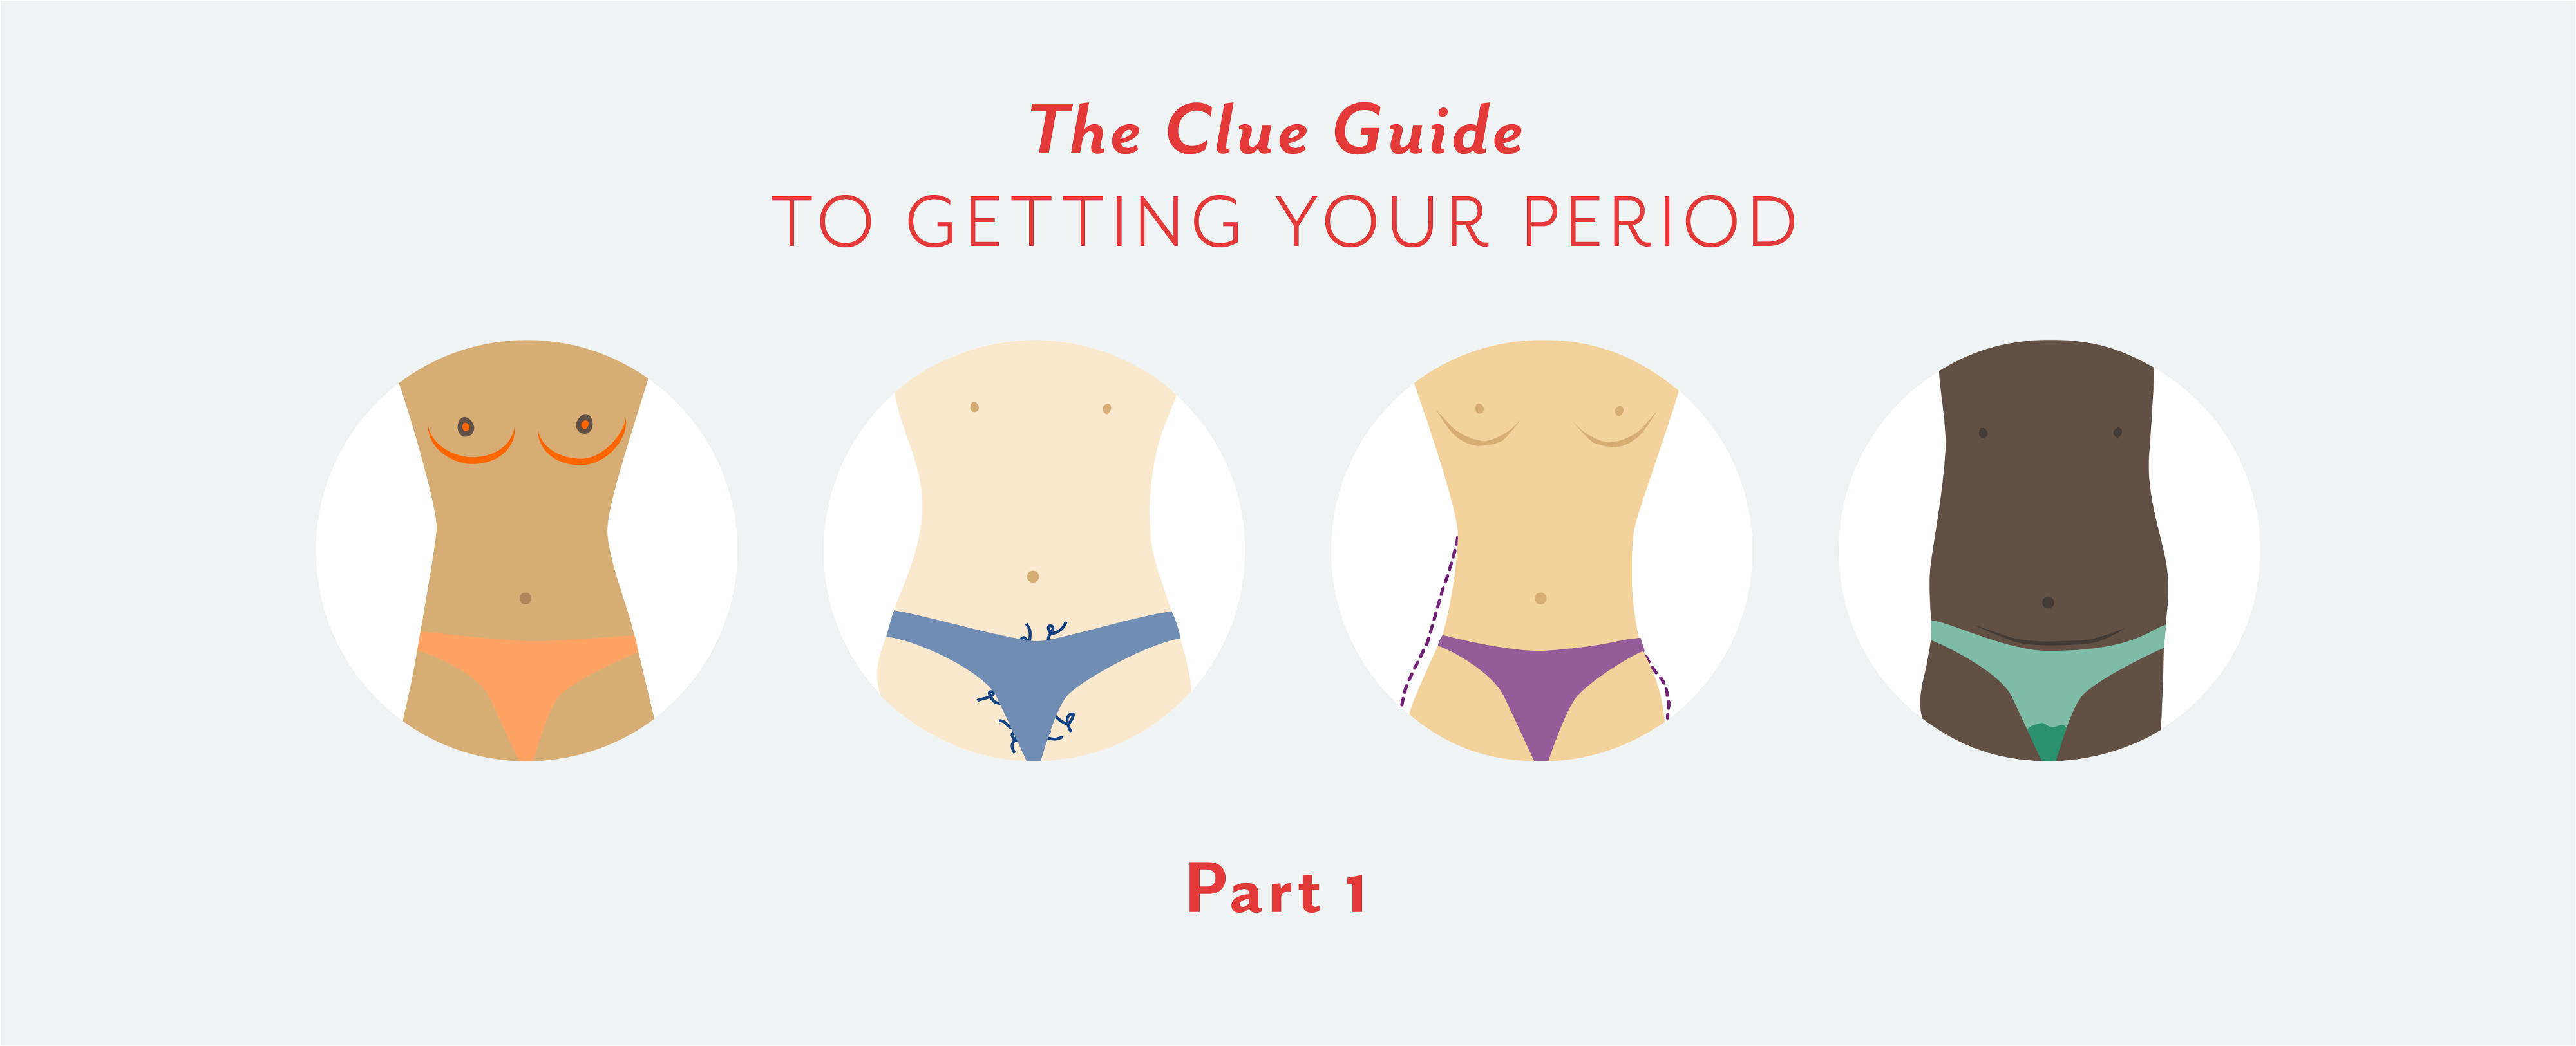 Part 1: The Clue guide to getting your period - Clued In - Medium